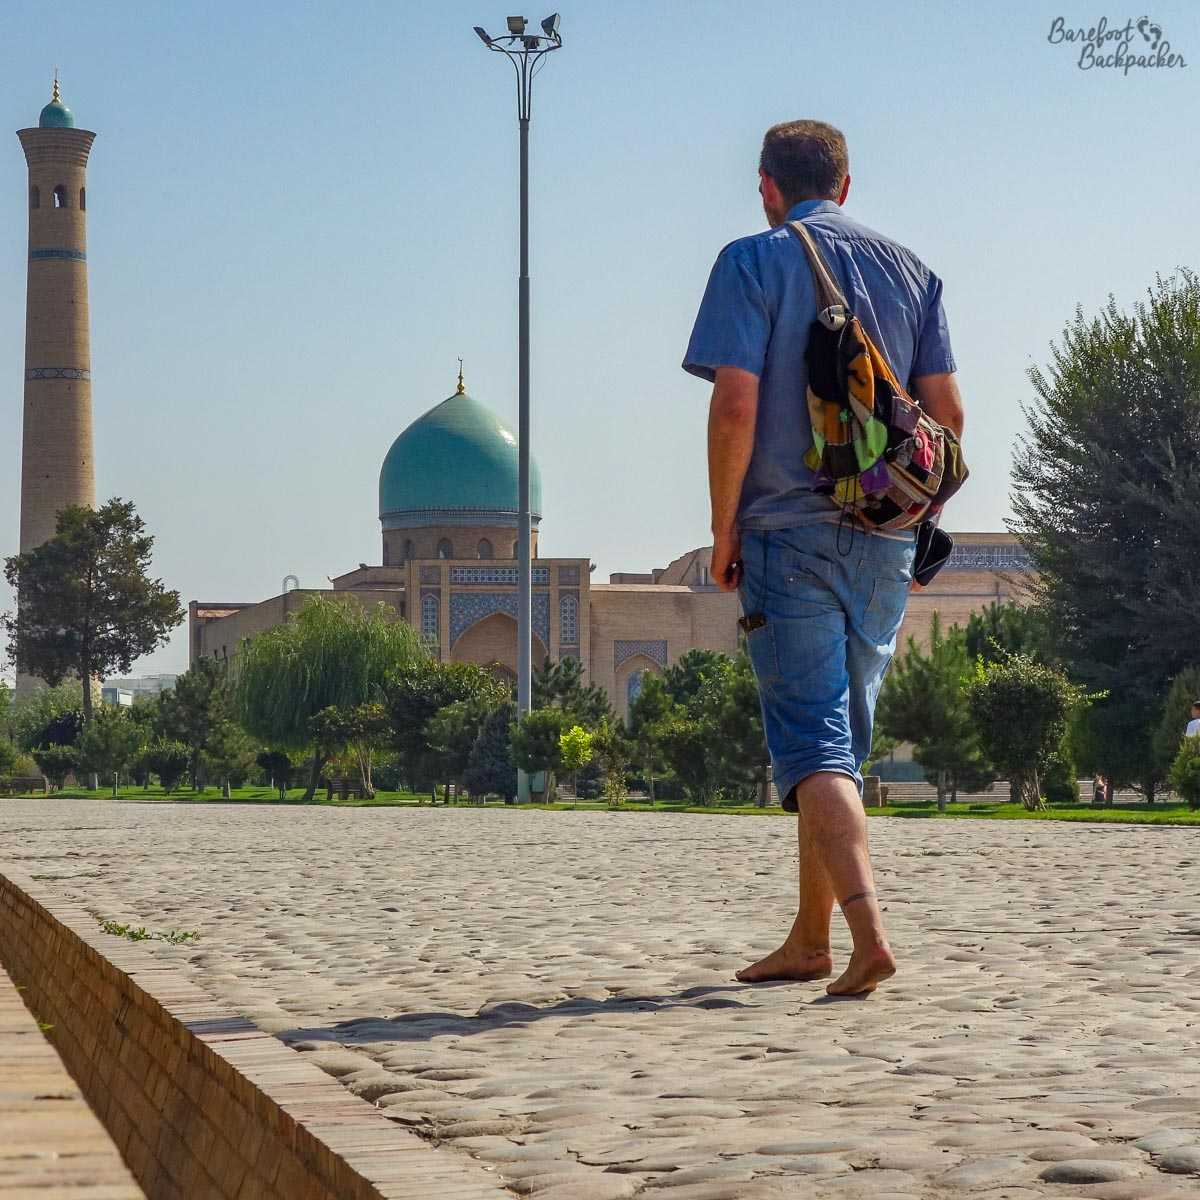 The Barefoot Backpacker, walking in the Hazrati Imam complex in Tashkent - Islamic architecture abounds, with colourful tiles and minarets.